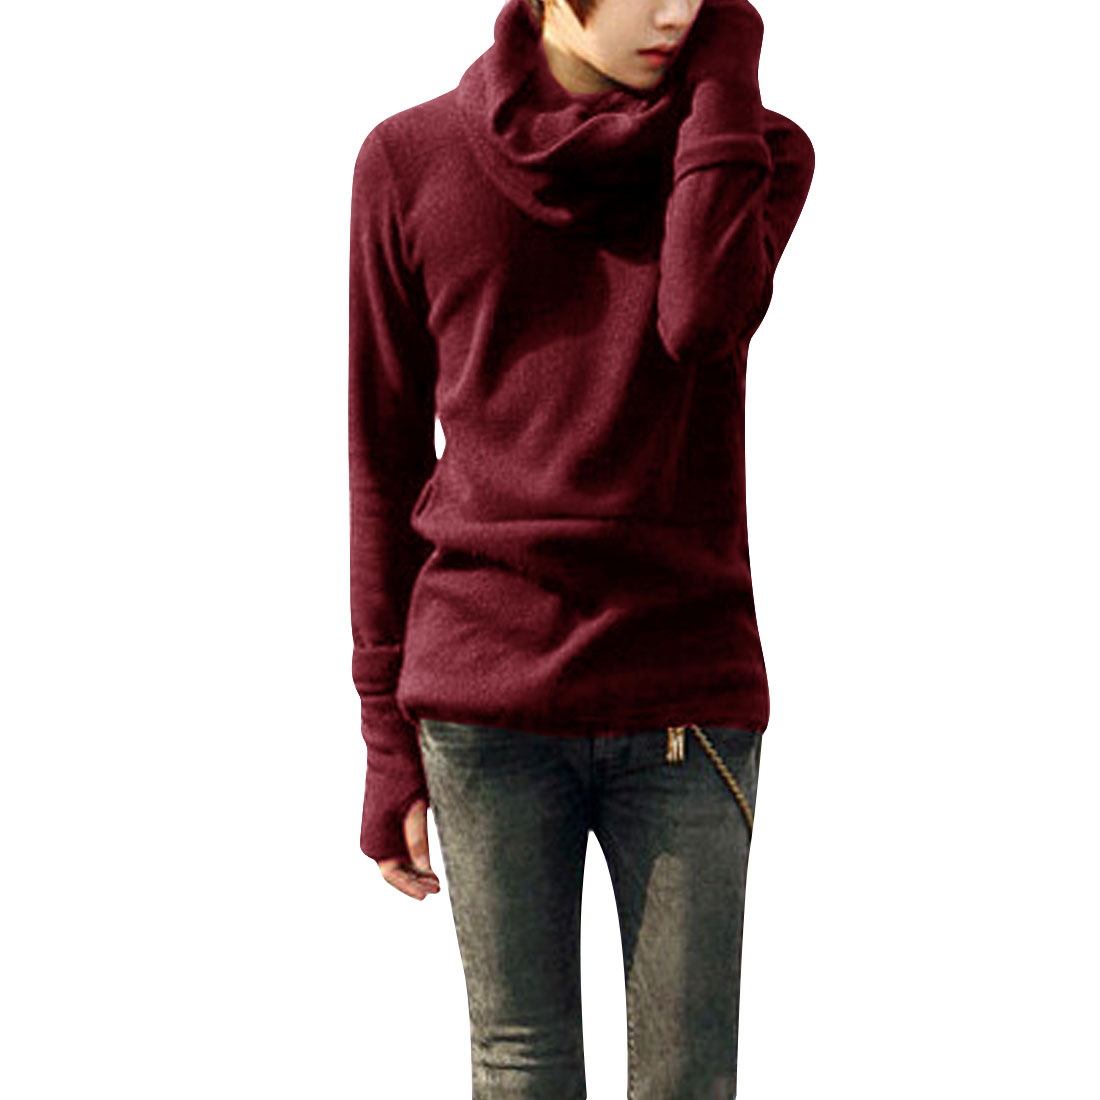 Men Long Sleeve Pullover Ribbing Elastic Knitted Shirt Burgundy S